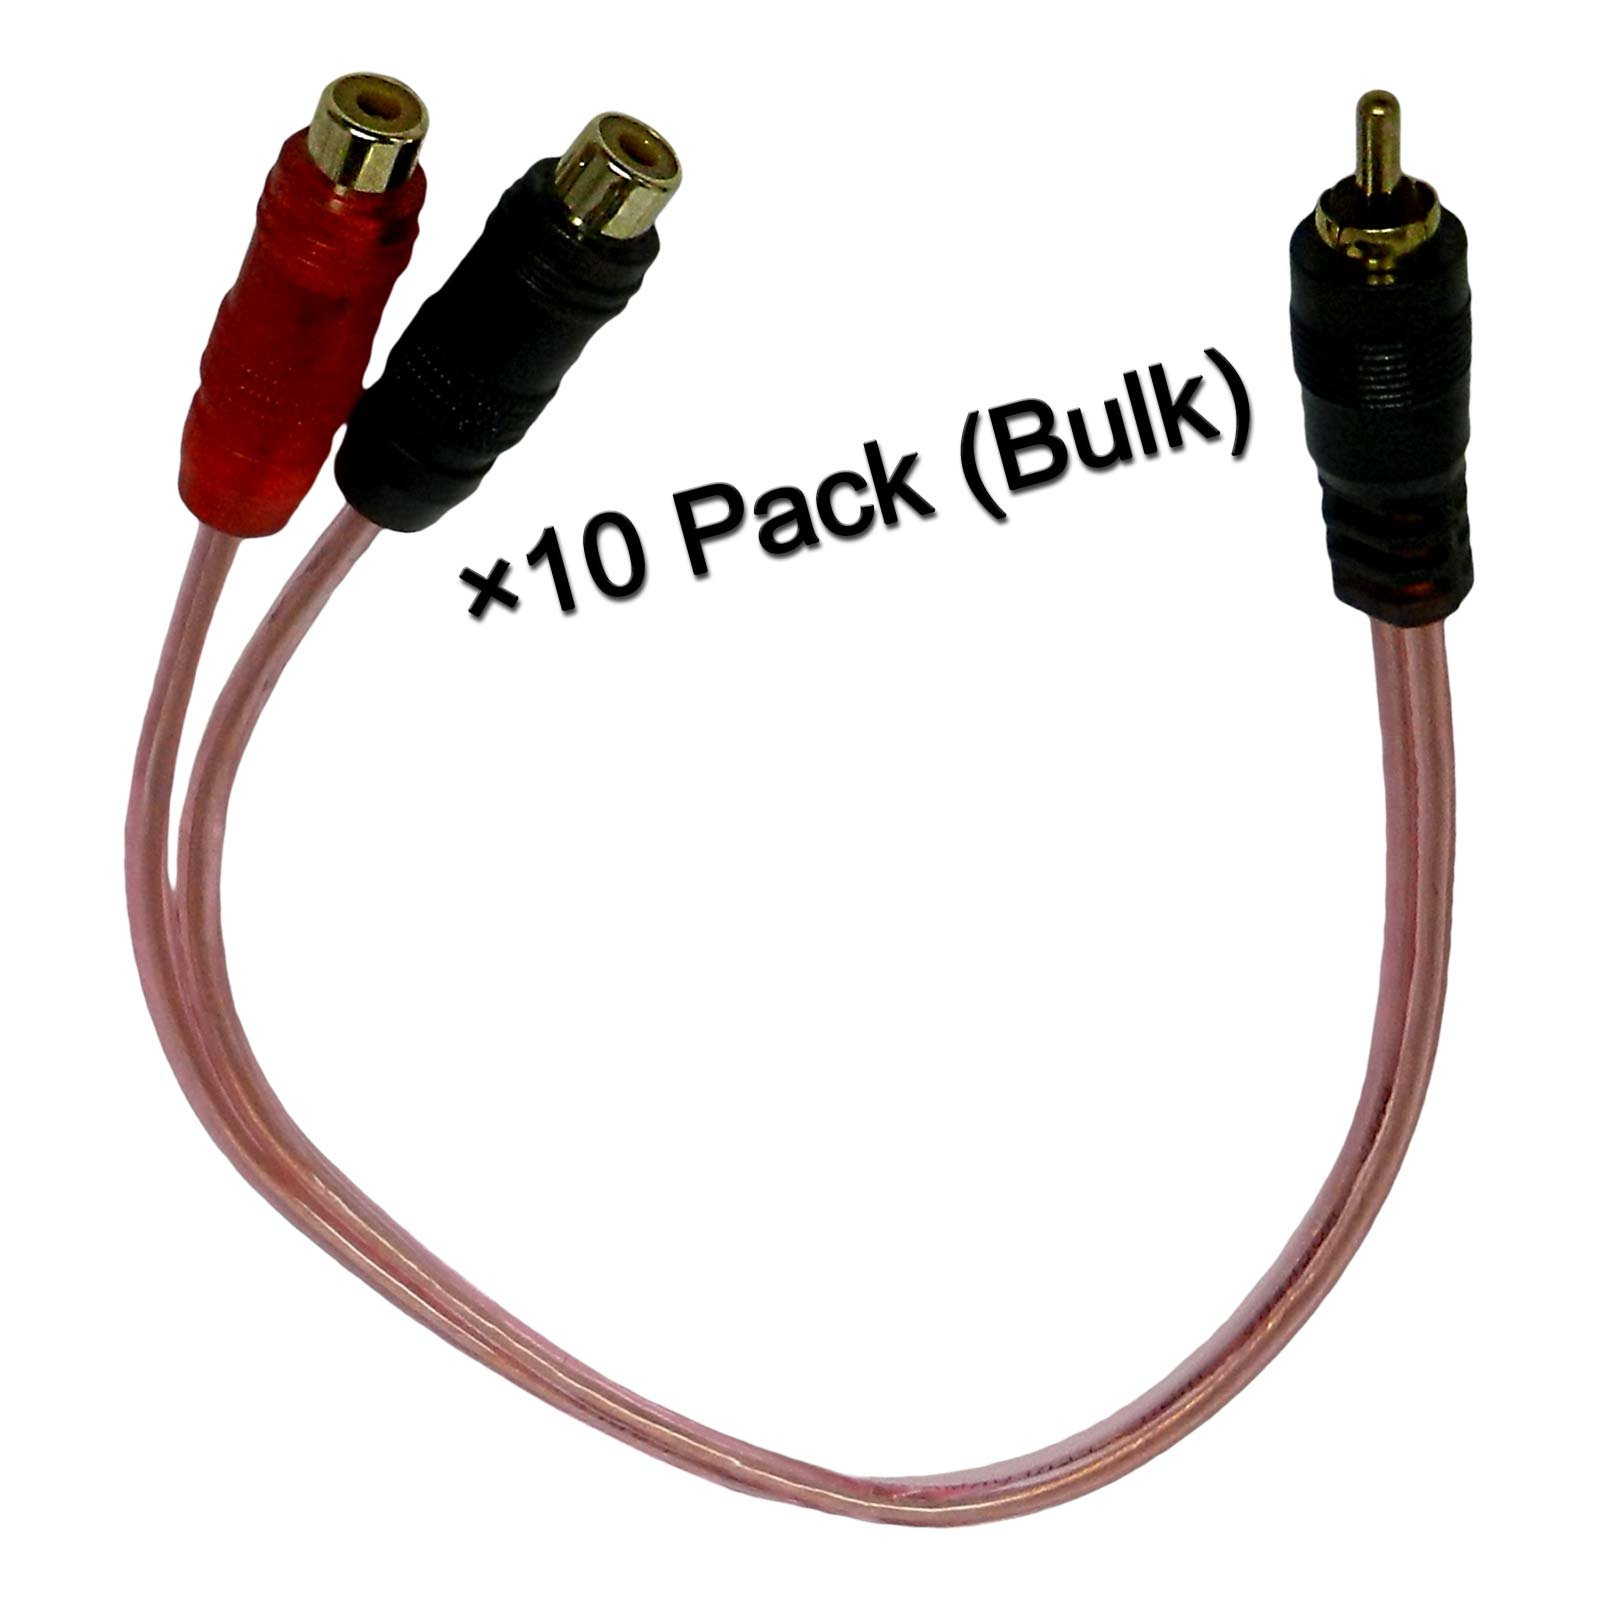 Bass Rockers Bulk 10 Pack RCA Y-Splitter Cables (1 Male to 2 Female) - BRC2F1M by Bass Rockers (Image #2)